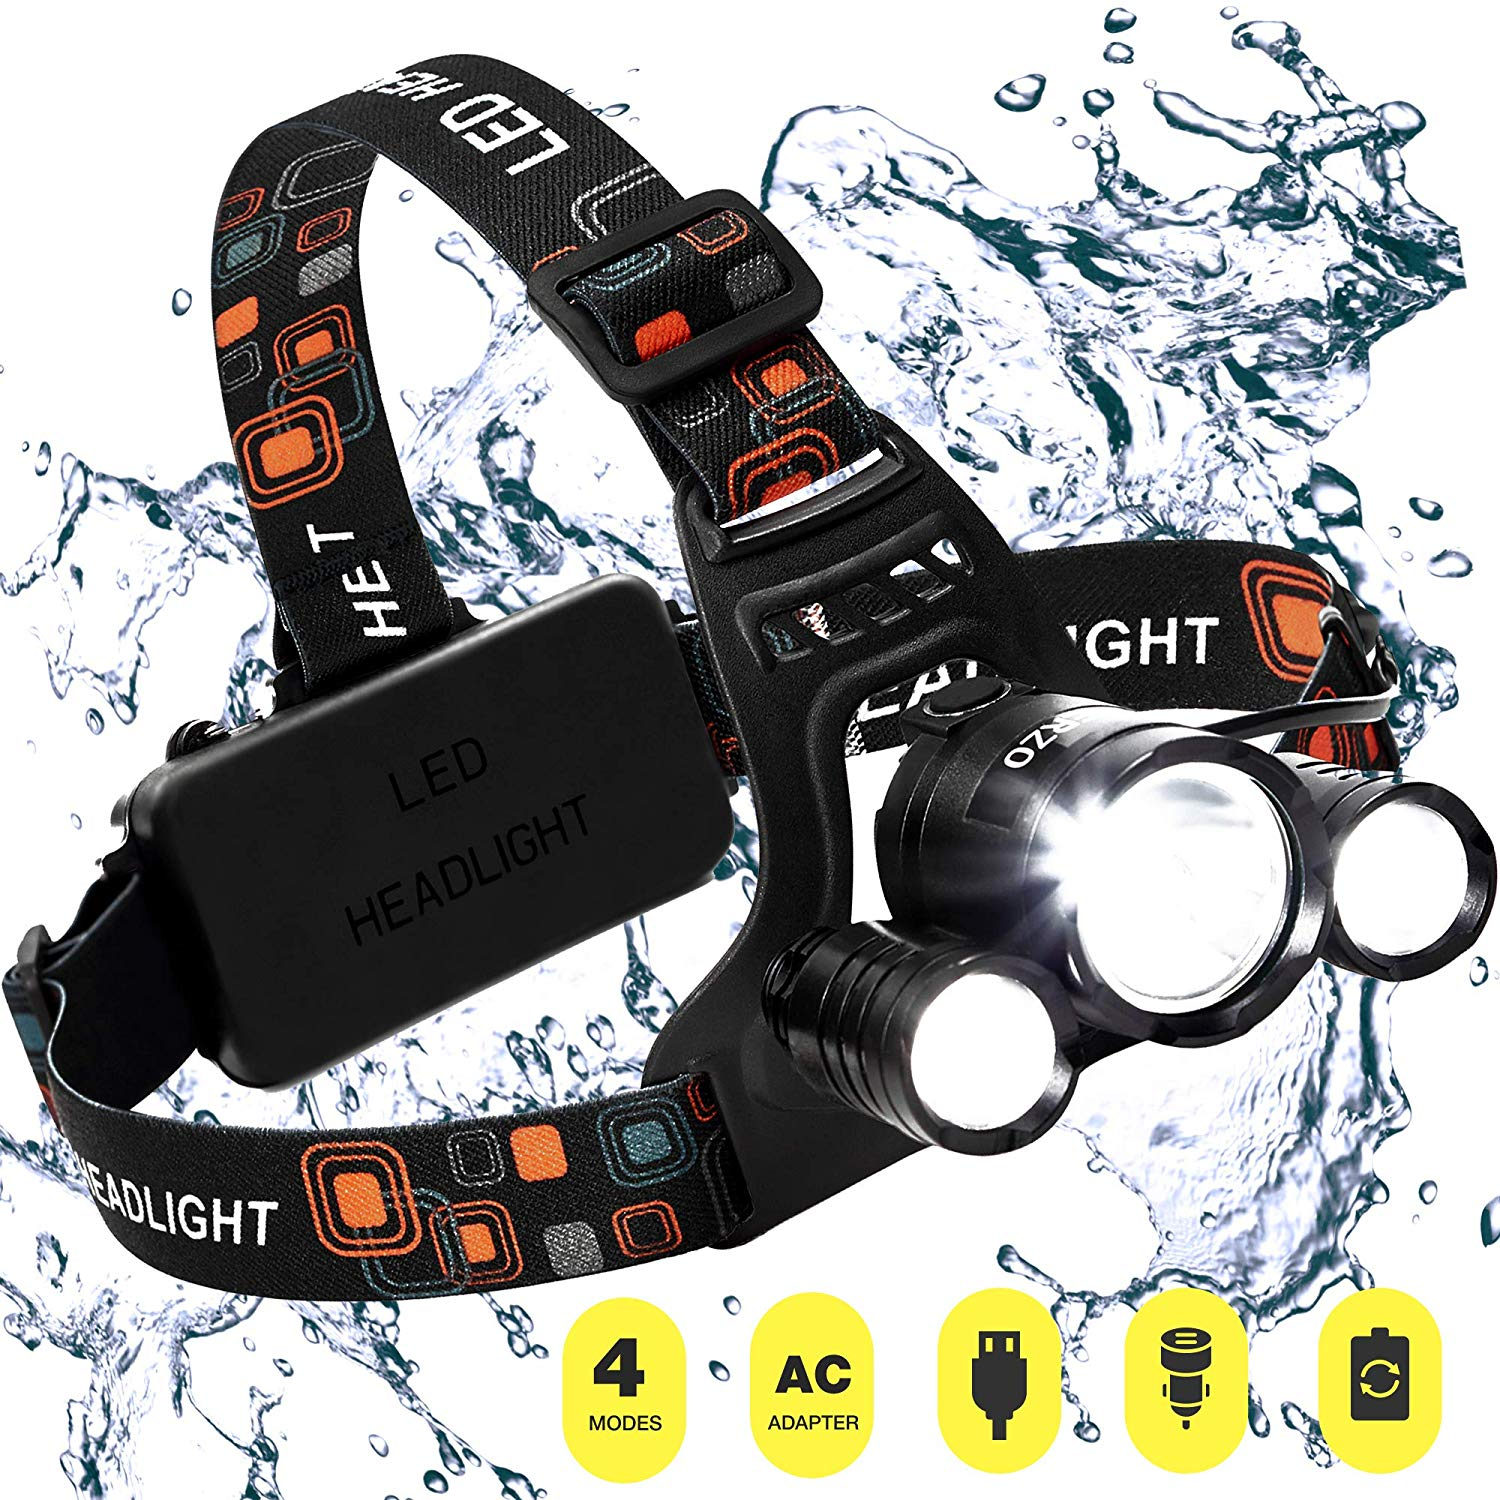 Head lamp - New 2018 Led Rechargeable Headlamp Flashlight with 18650 Battery - Bright Waterproof Headlamp for Camping Hunting Running Hiking - Outdoor Led Headlight Flashlight - Black